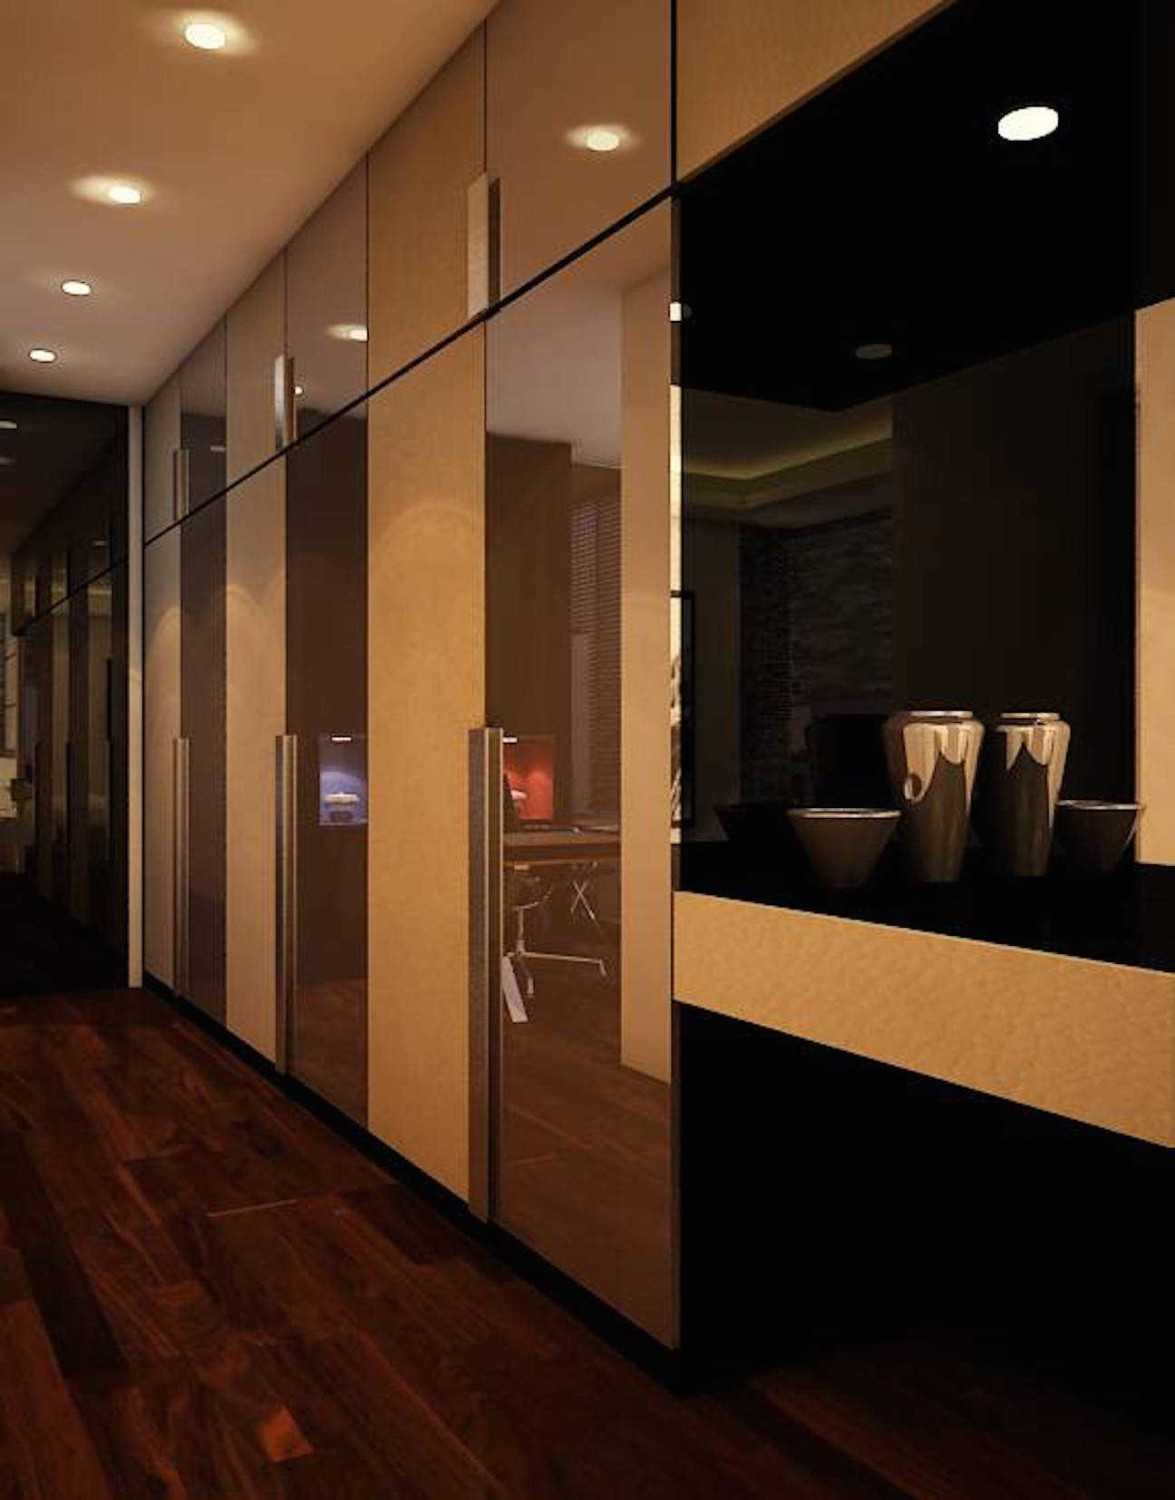 Expo Tje. Aa.aa.bsc.ba.ma The Suitroom With Office Function Apartment Jakarta, Indonesia Green Hill Suitroom Apartment Interior Modern 26540